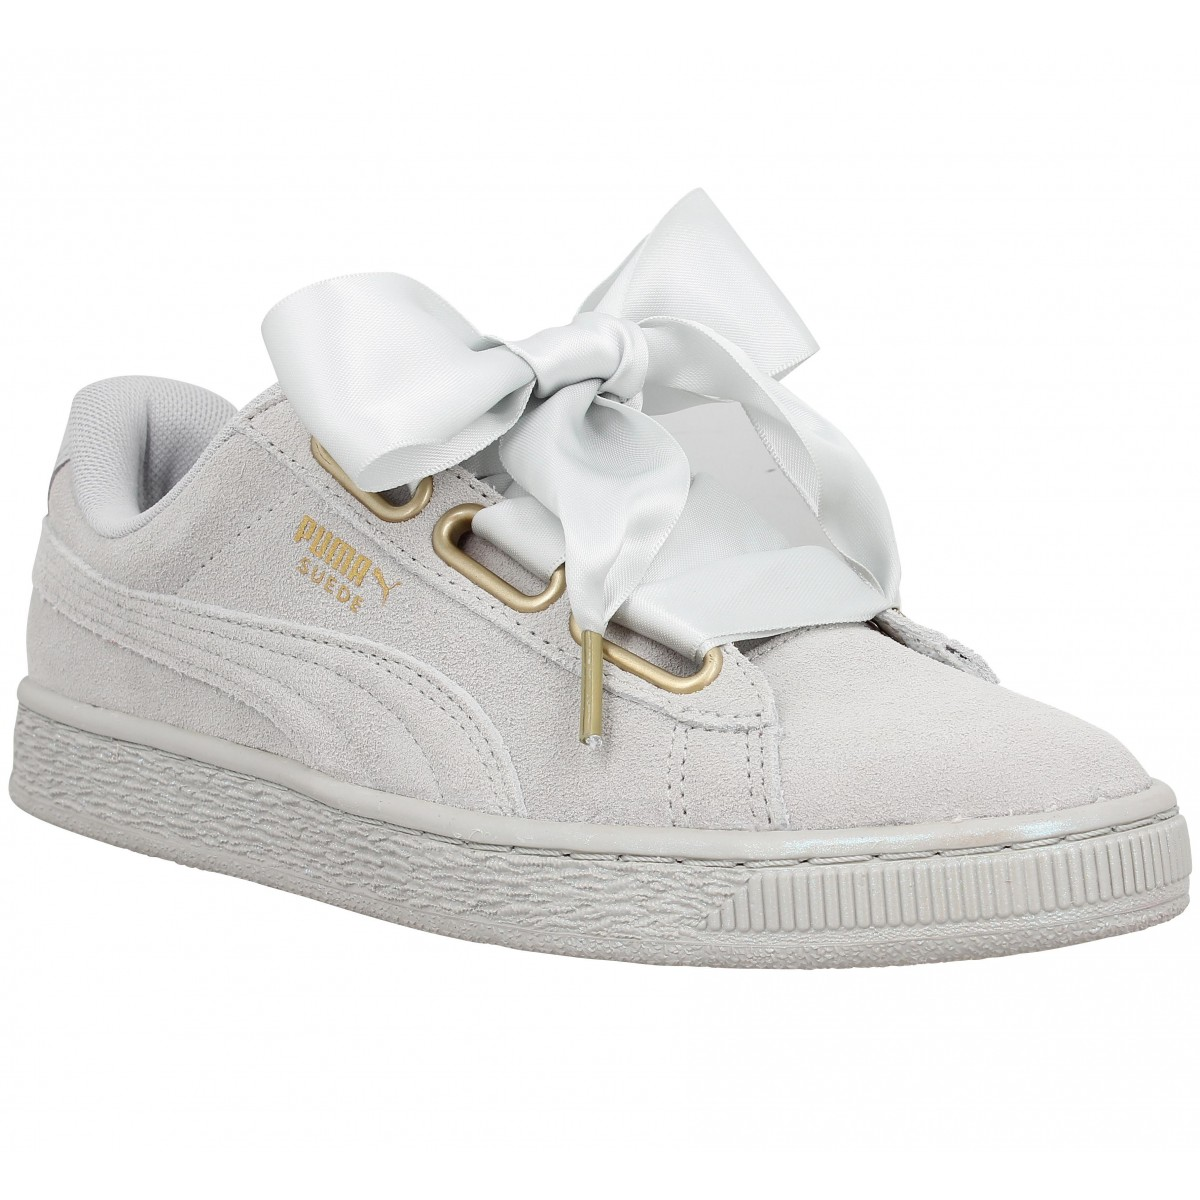 Puma Heart Satin Suede